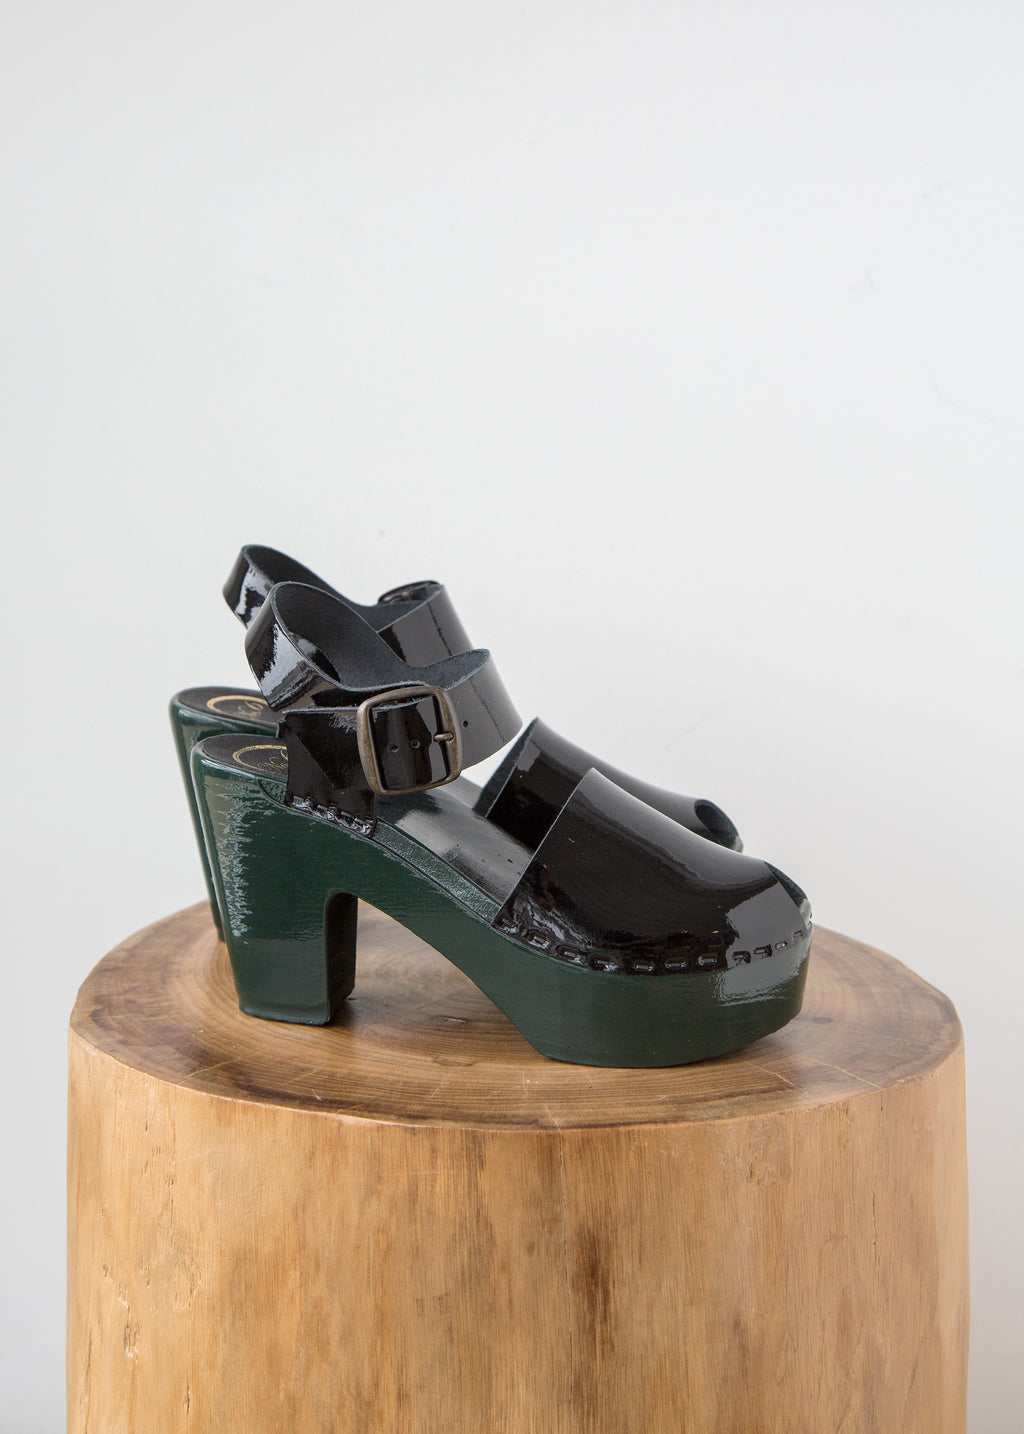 No.6 Jane Clog w Peep Toe Black/Green